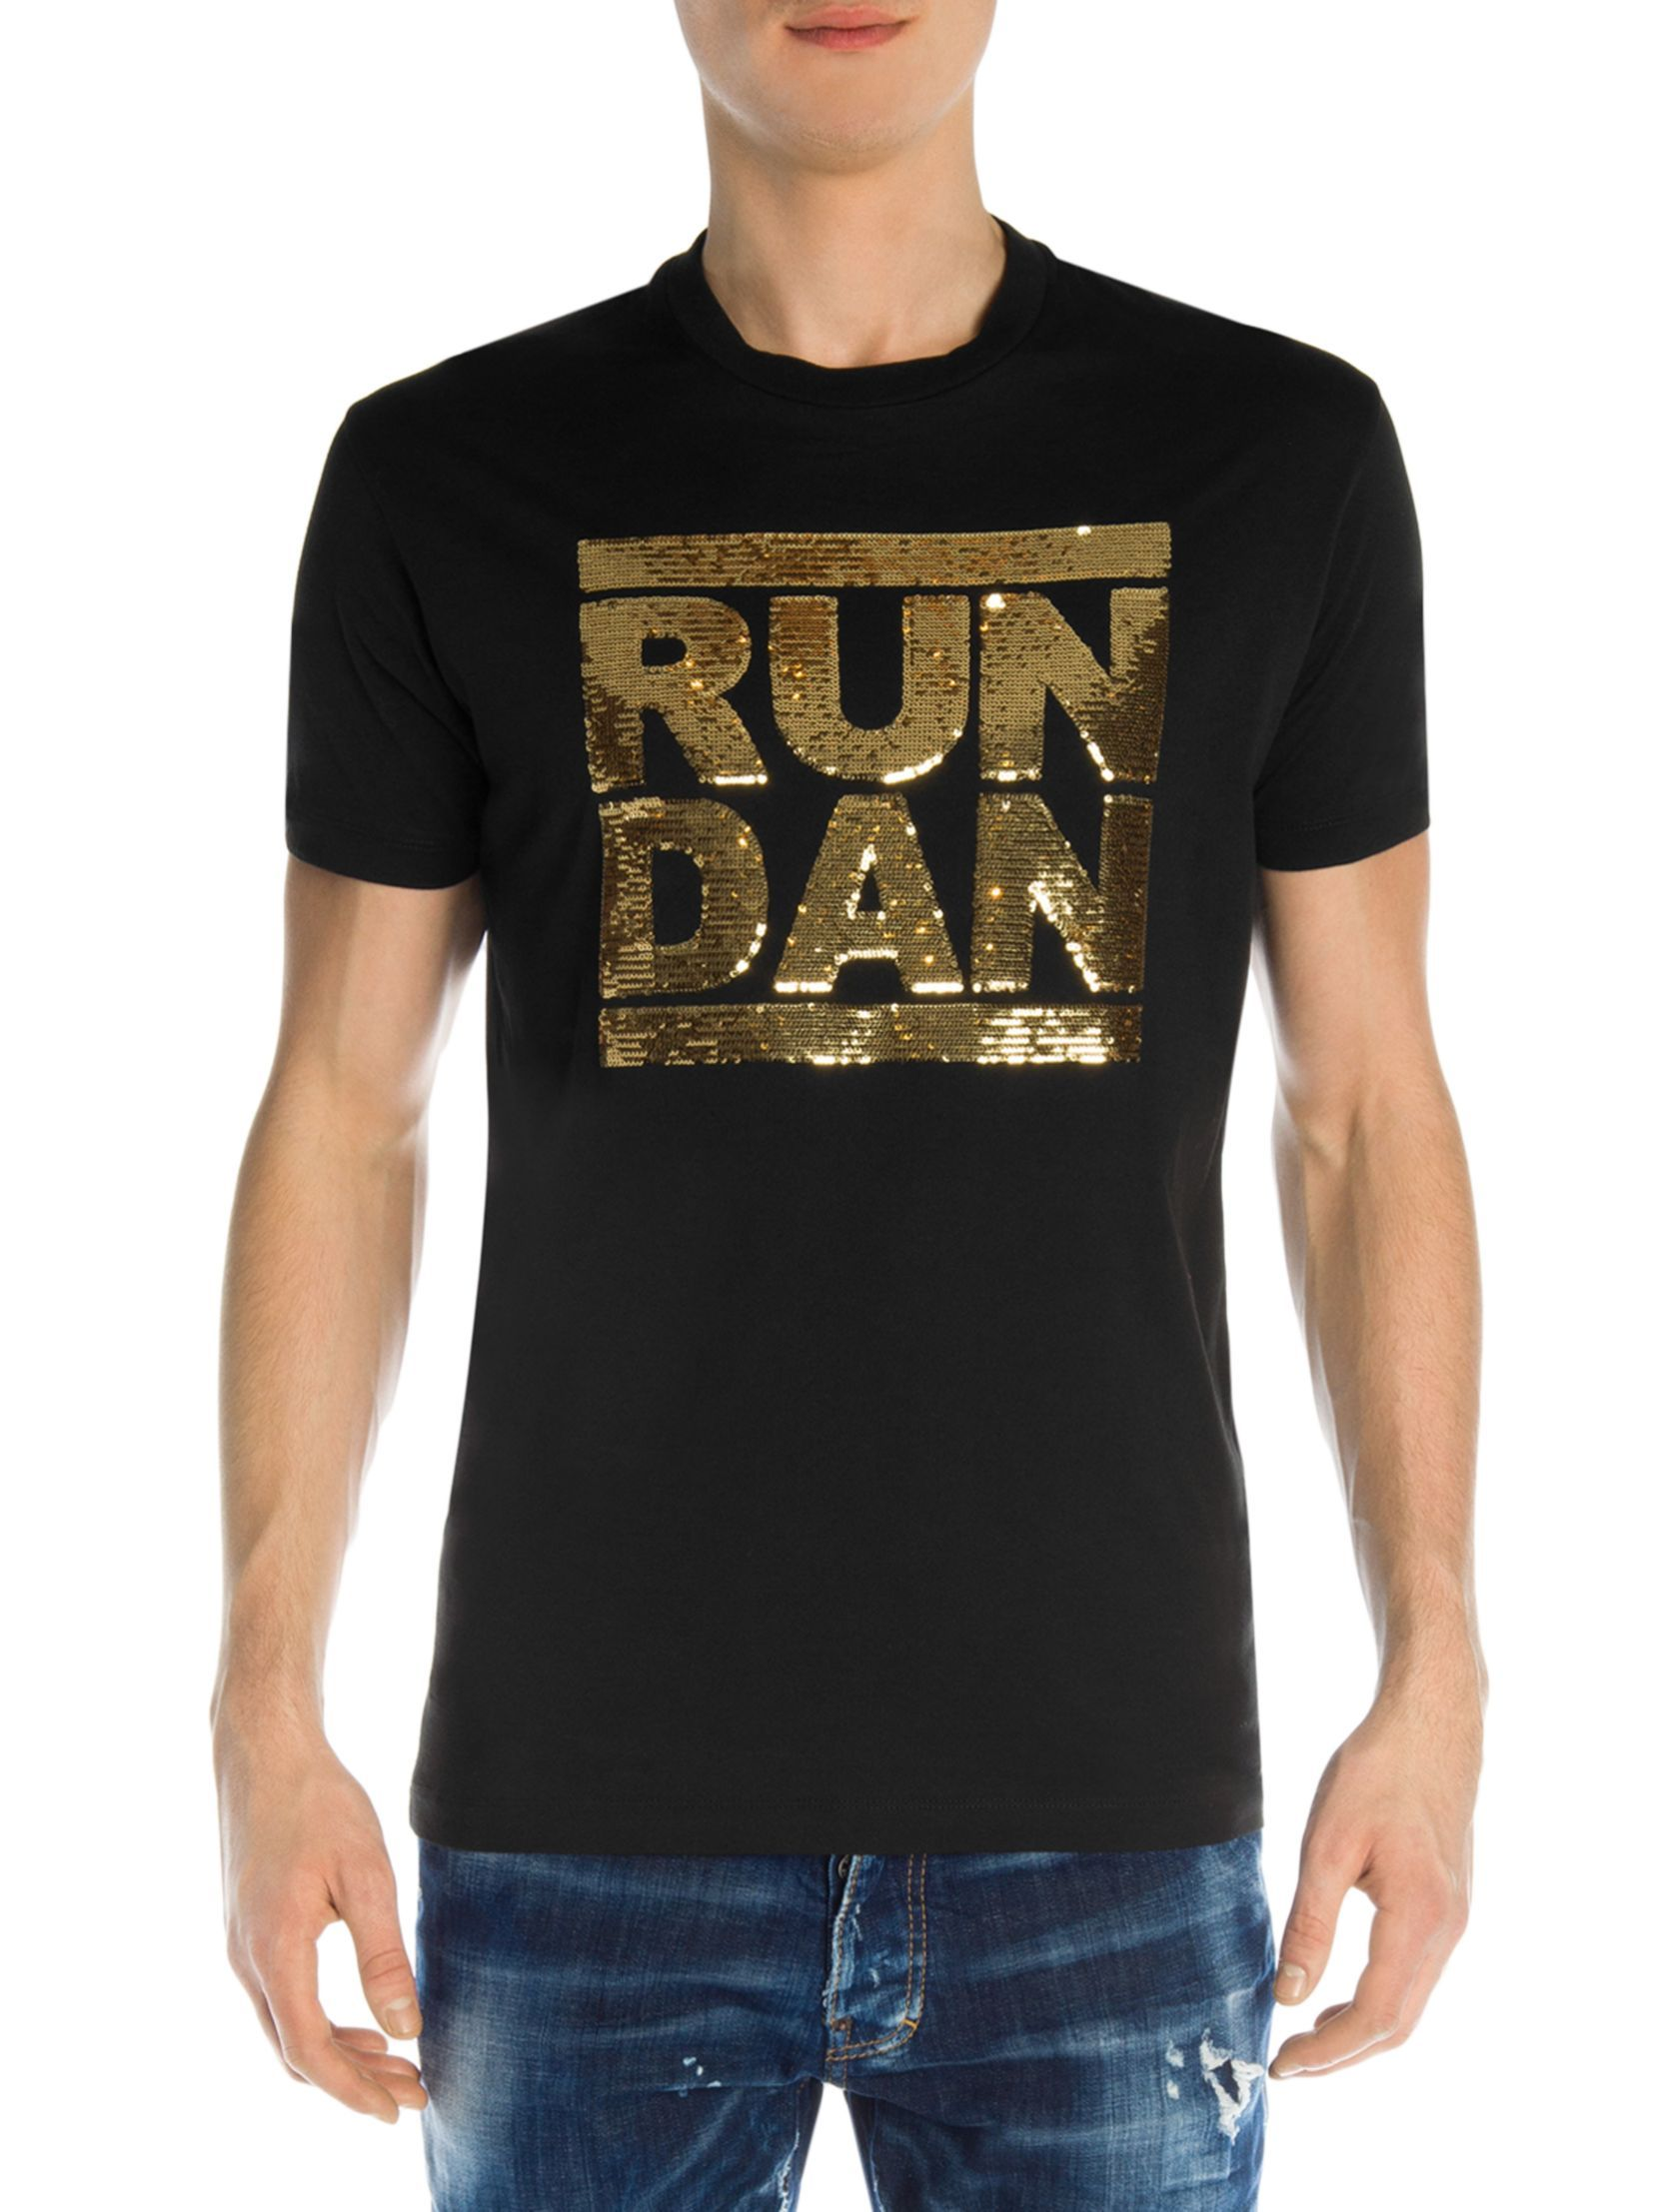 87ea291a DSQUARED2 Run Dan Sequin Cotton Tee | T-shirts | Mens tops, Cotton ...